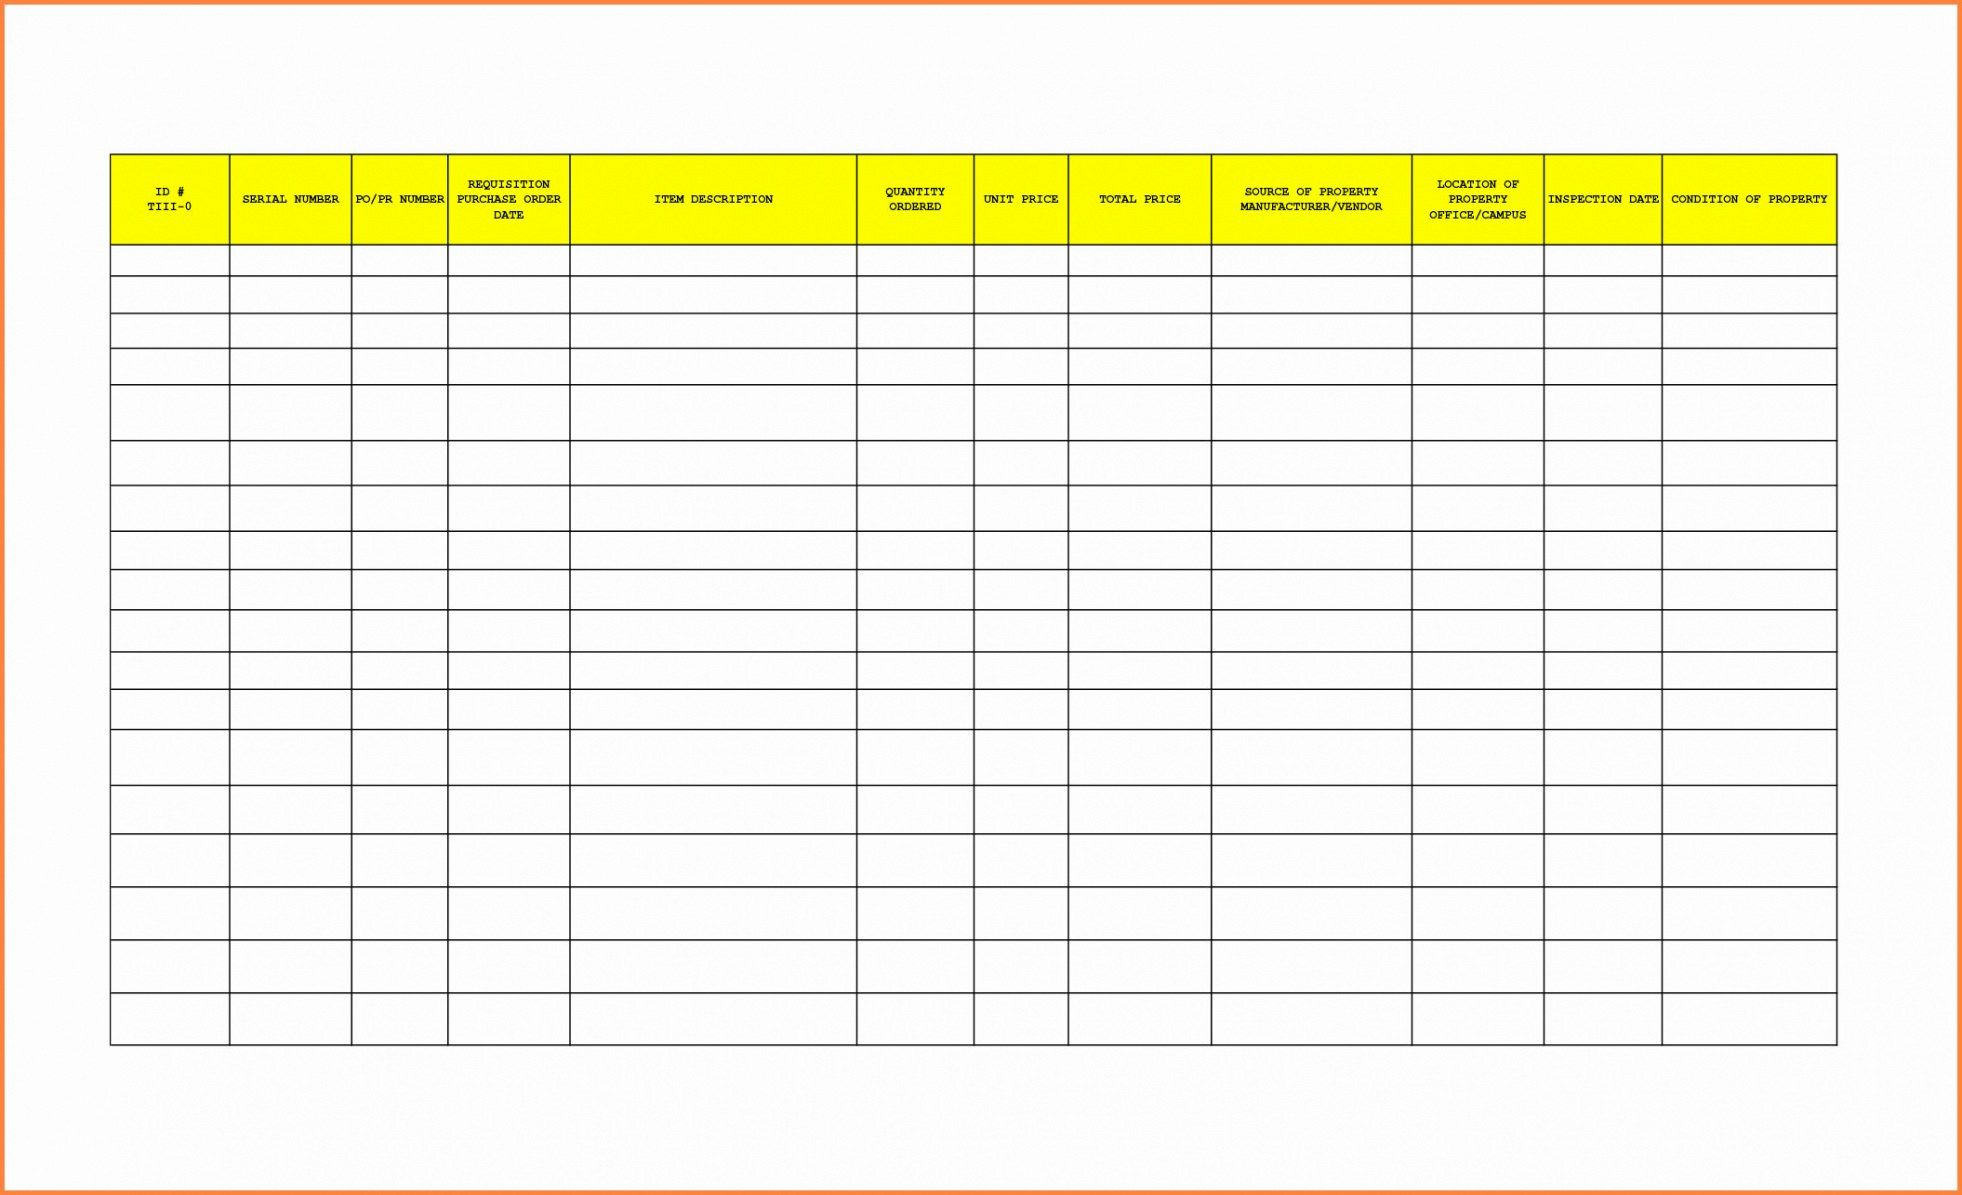 Editable Janitorial Supplies Inventory Template Doc Sample In 2021 Office Supplies Checklist Office Supplies List List Template Office supply inventory list template excel